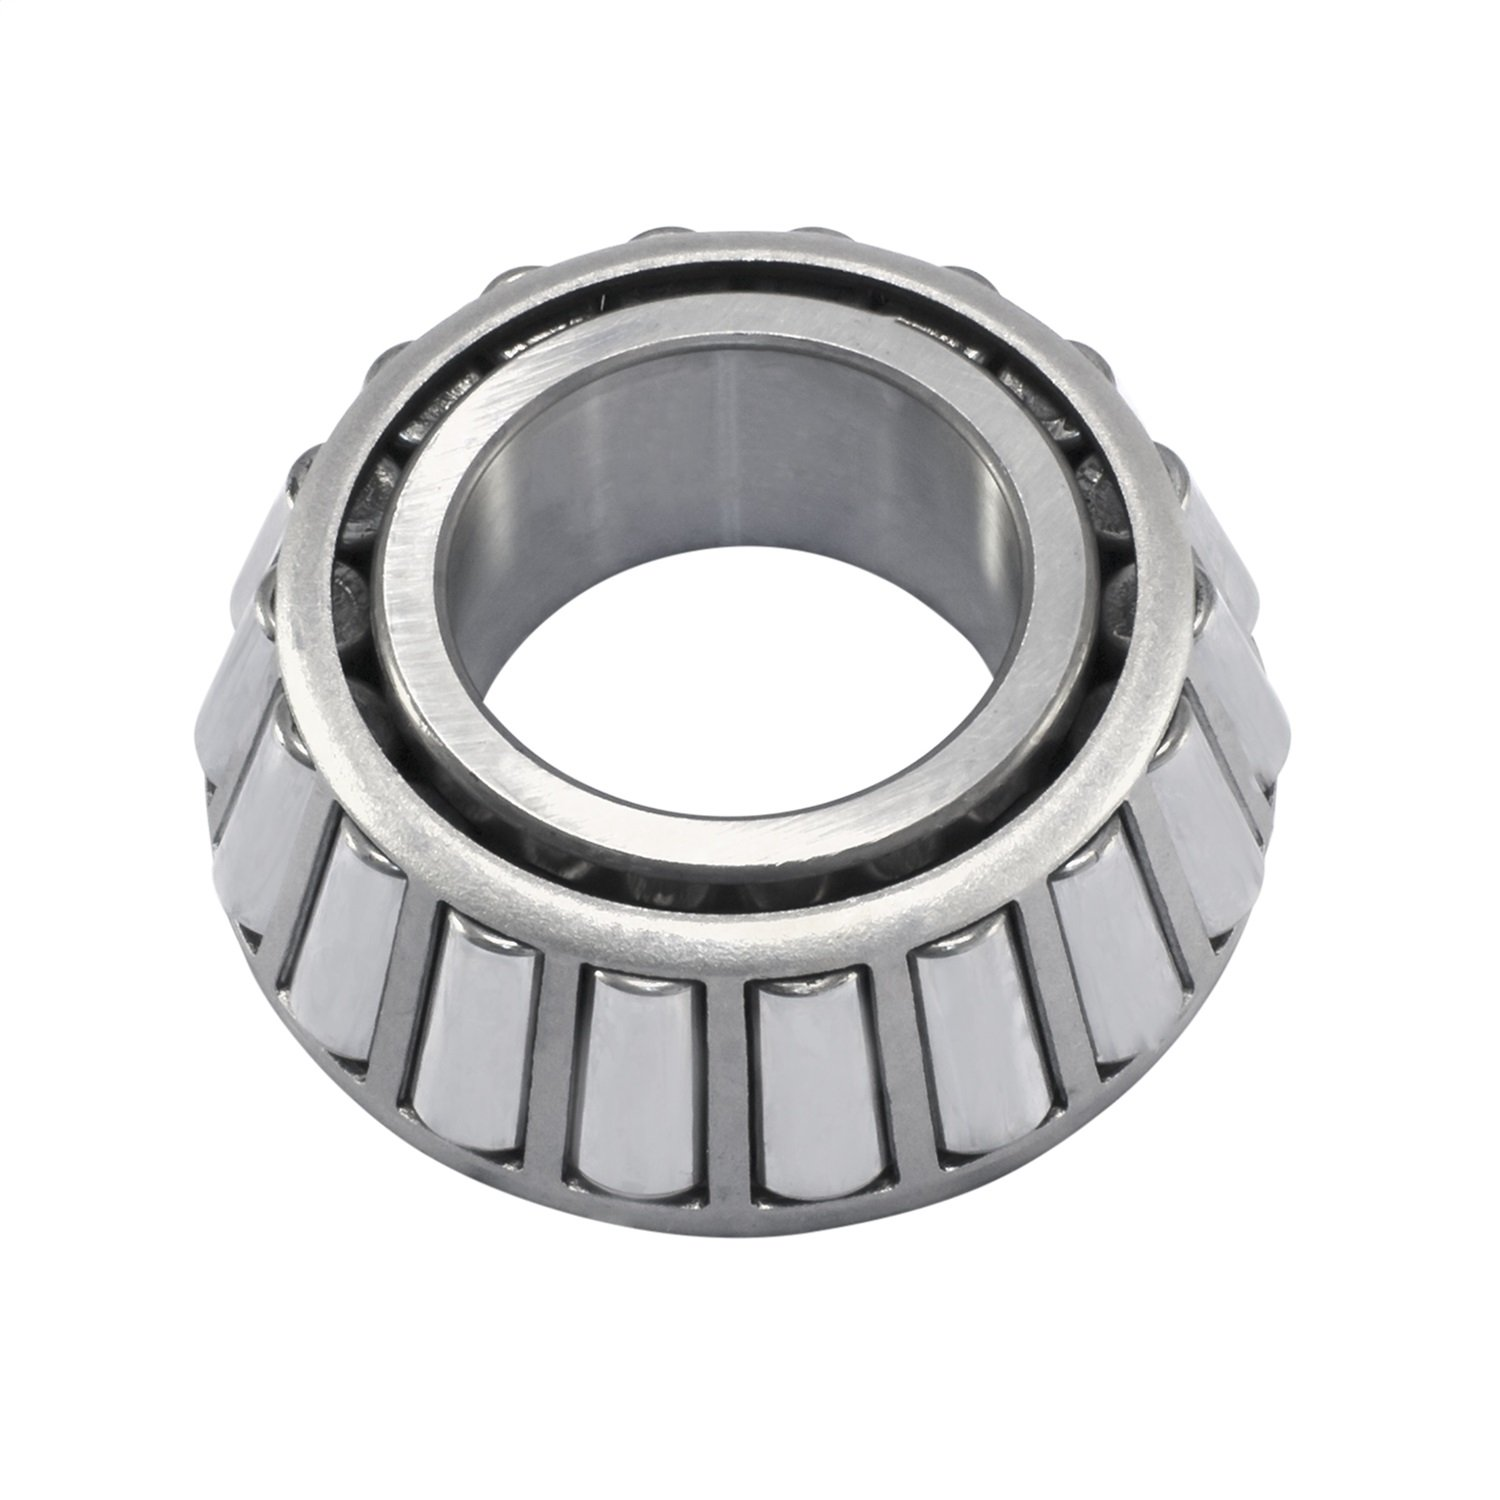 Yukon Gear & Axle (YT SB-HM803146) Set-Up Bearing for Dana 60 Front & Rear. 16 30 32 35 Spline.